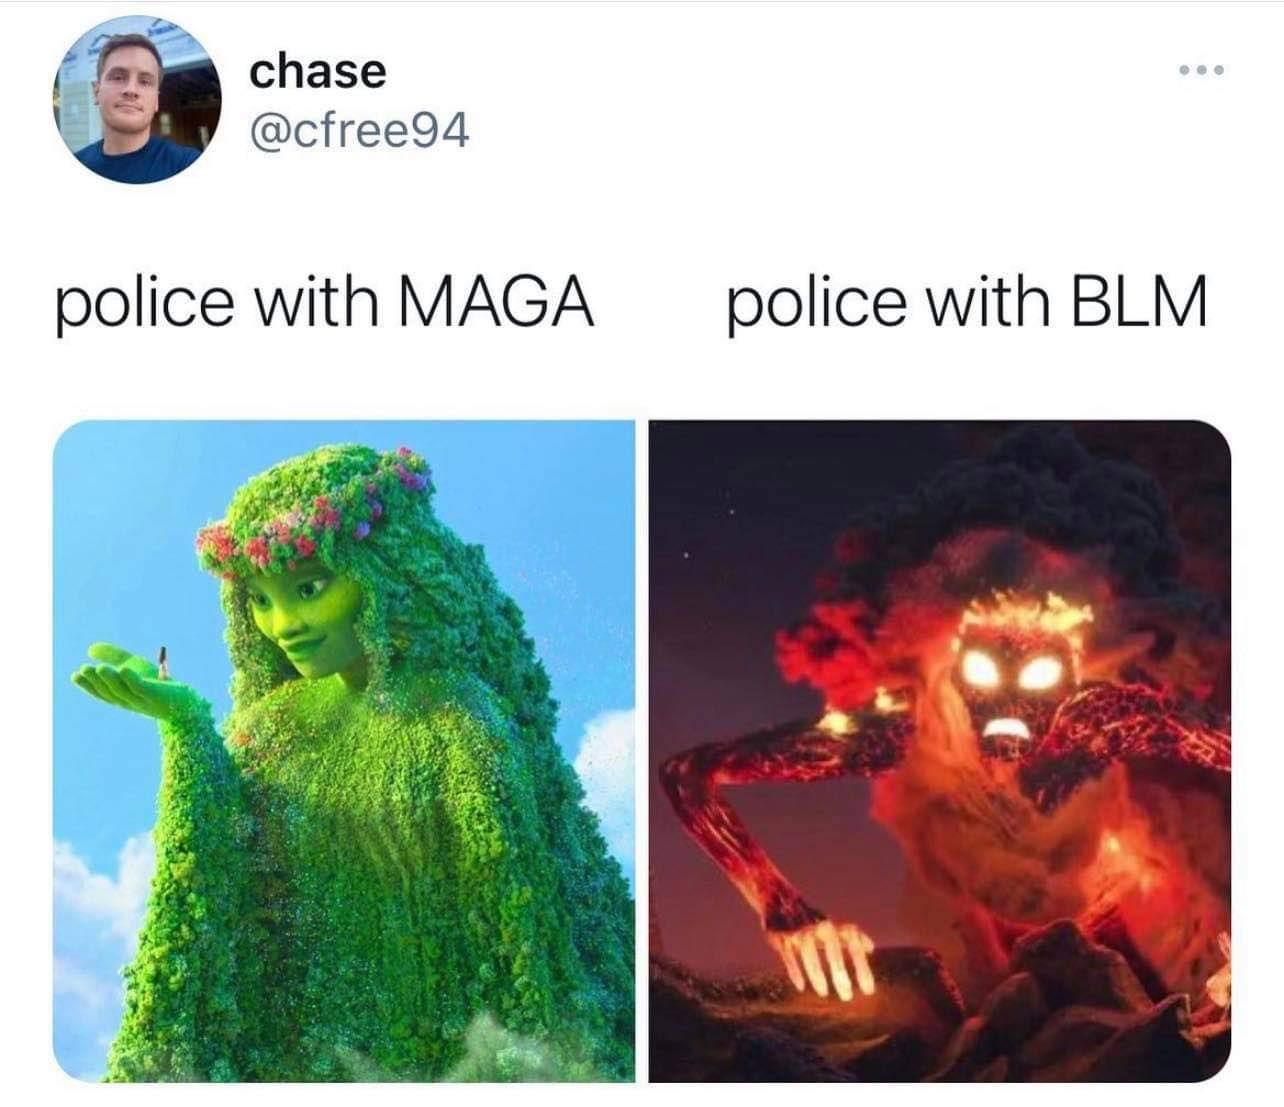 police with maga, police with blm, moana, te fiti